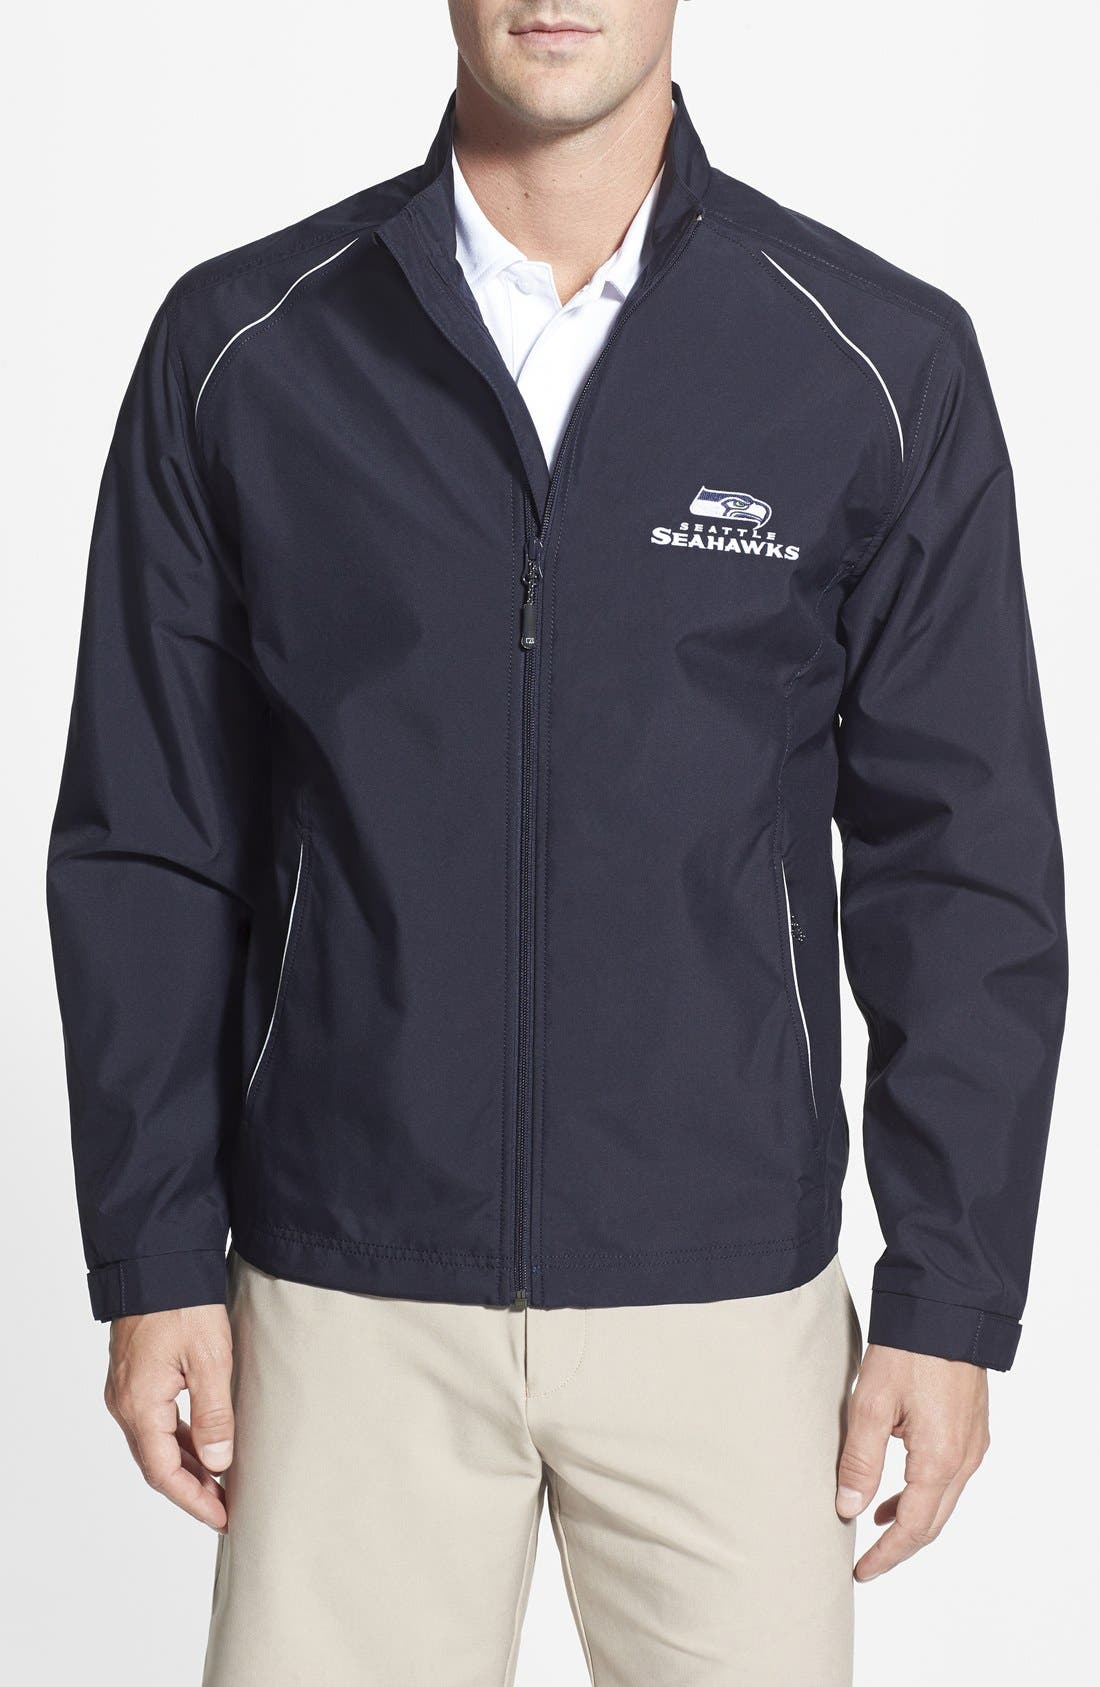 Cutter & Buck 'Seattle Seahawks - Beacon' WeatherTec Wind & Water Resistant Jacket (Big & Tall)